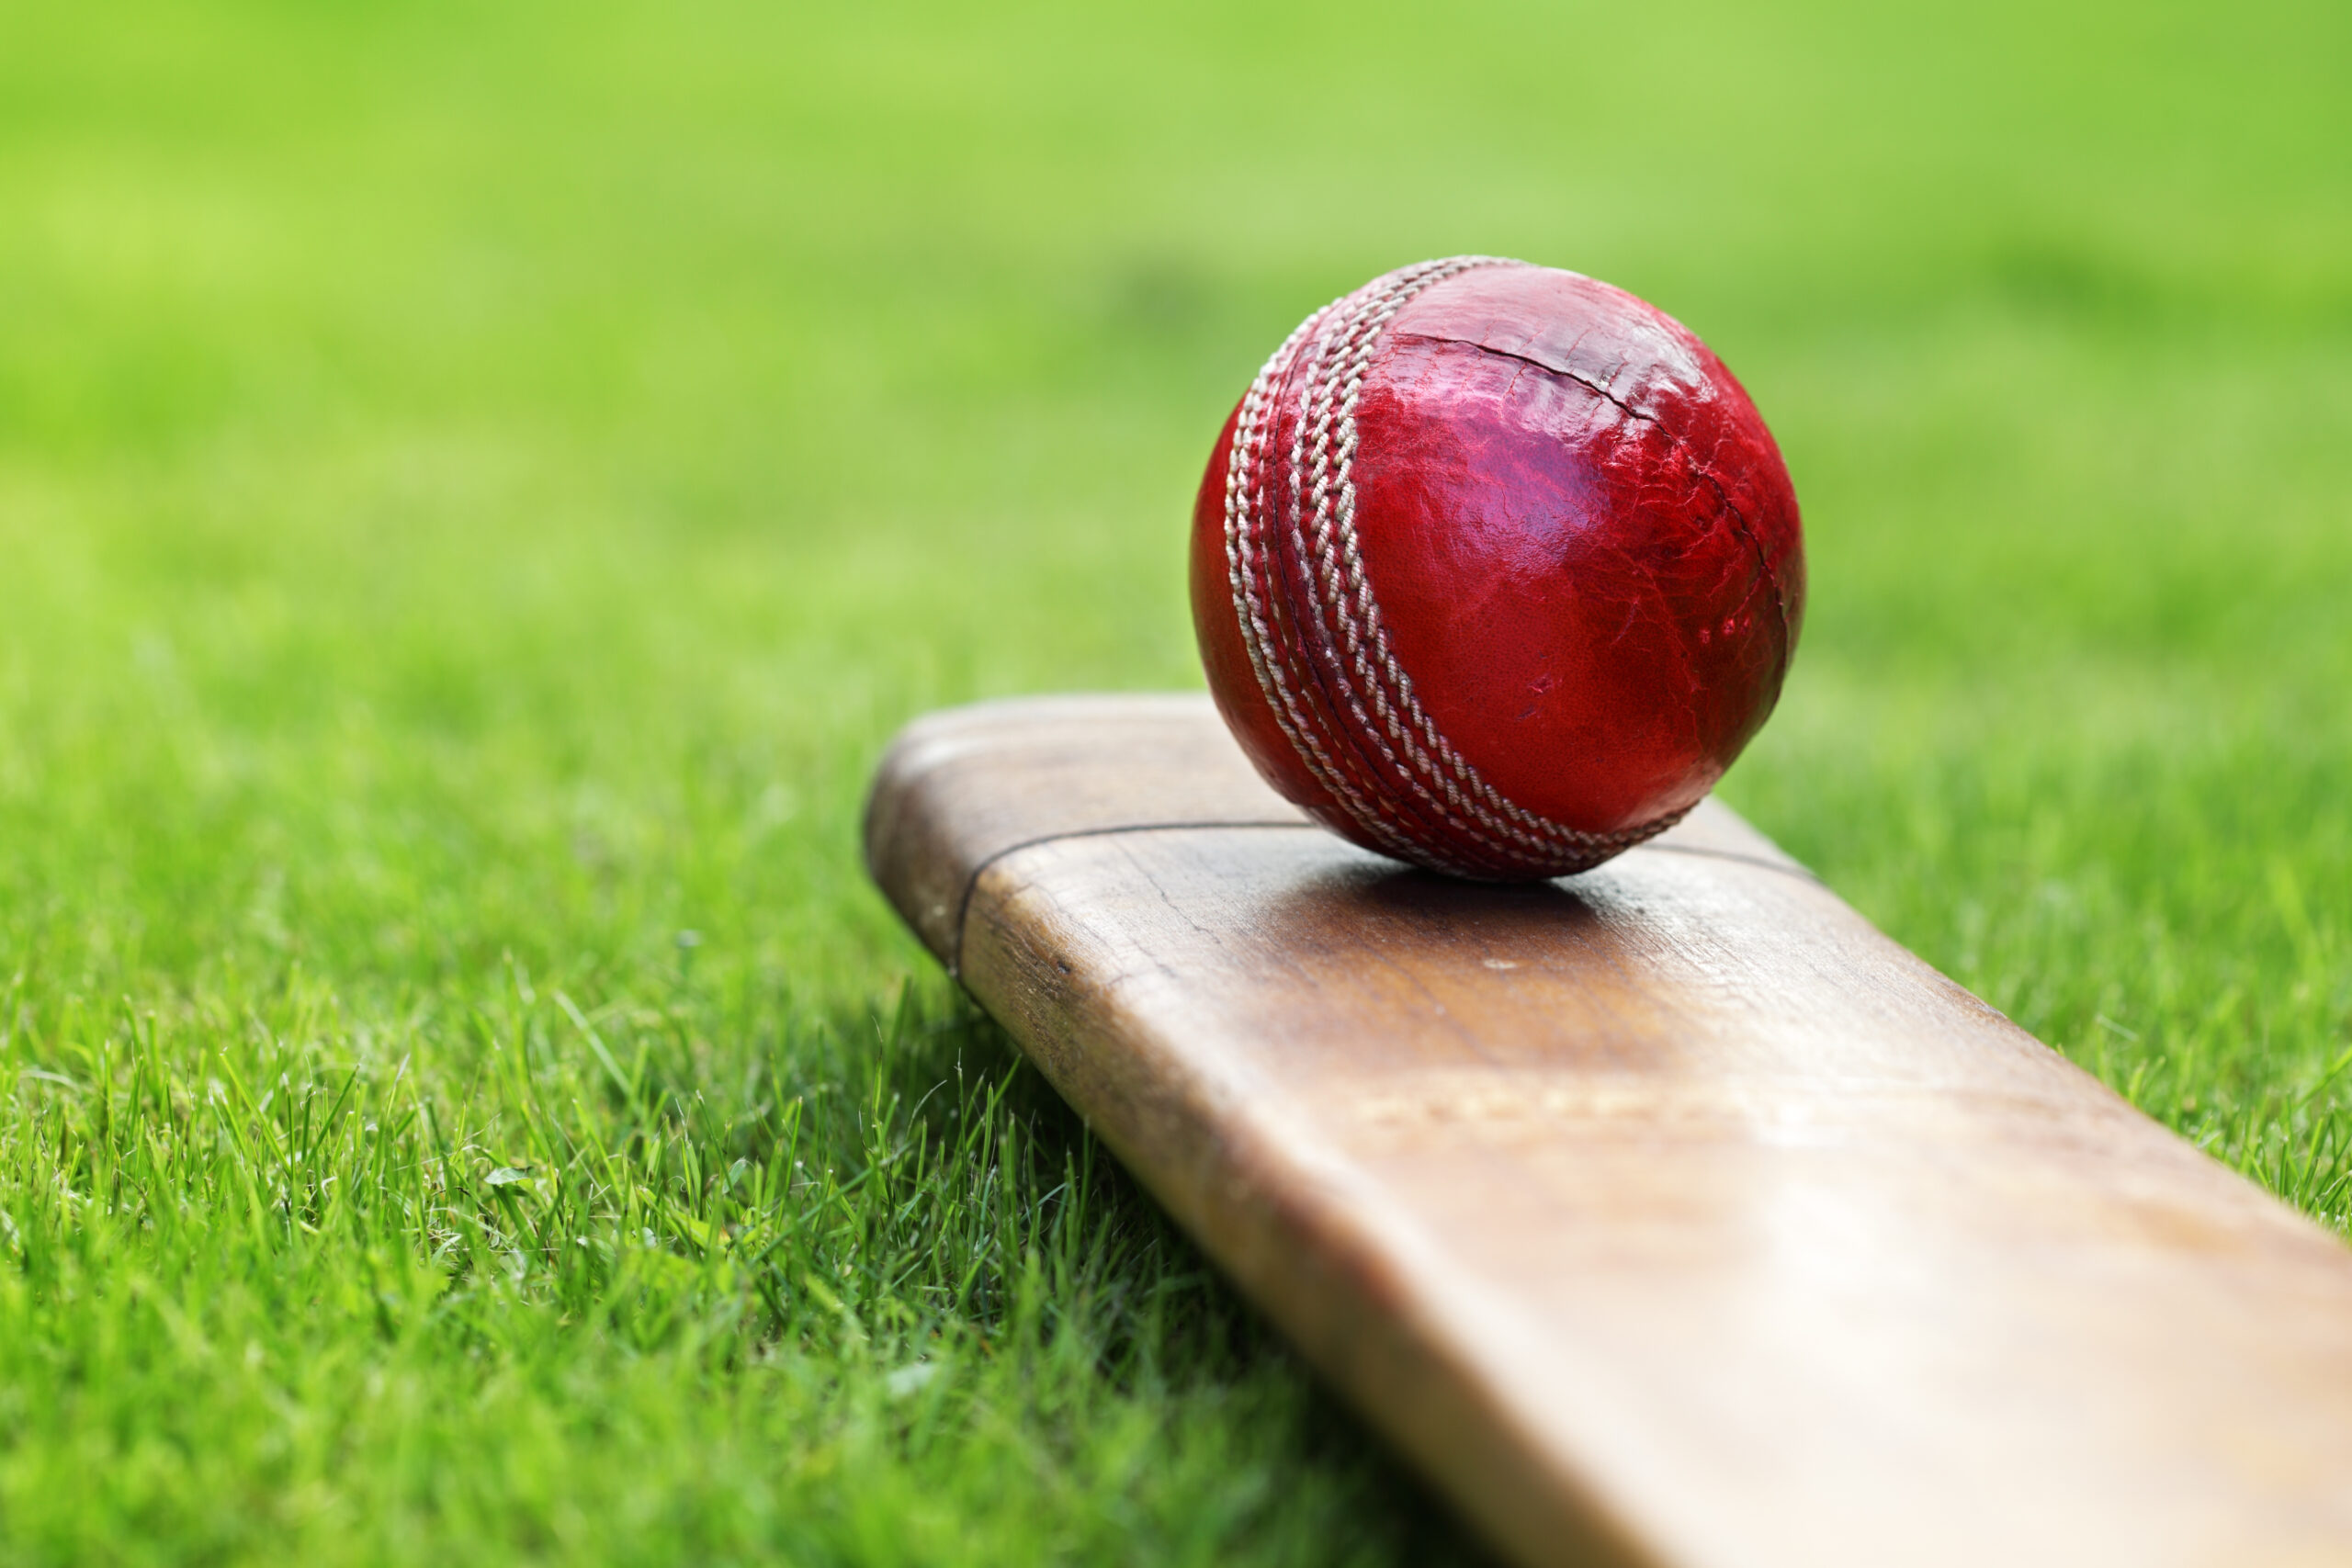 Henry Brothers Charity Cricket Match to raise funds for the Deer Shed Café at Alfreton Community Special School